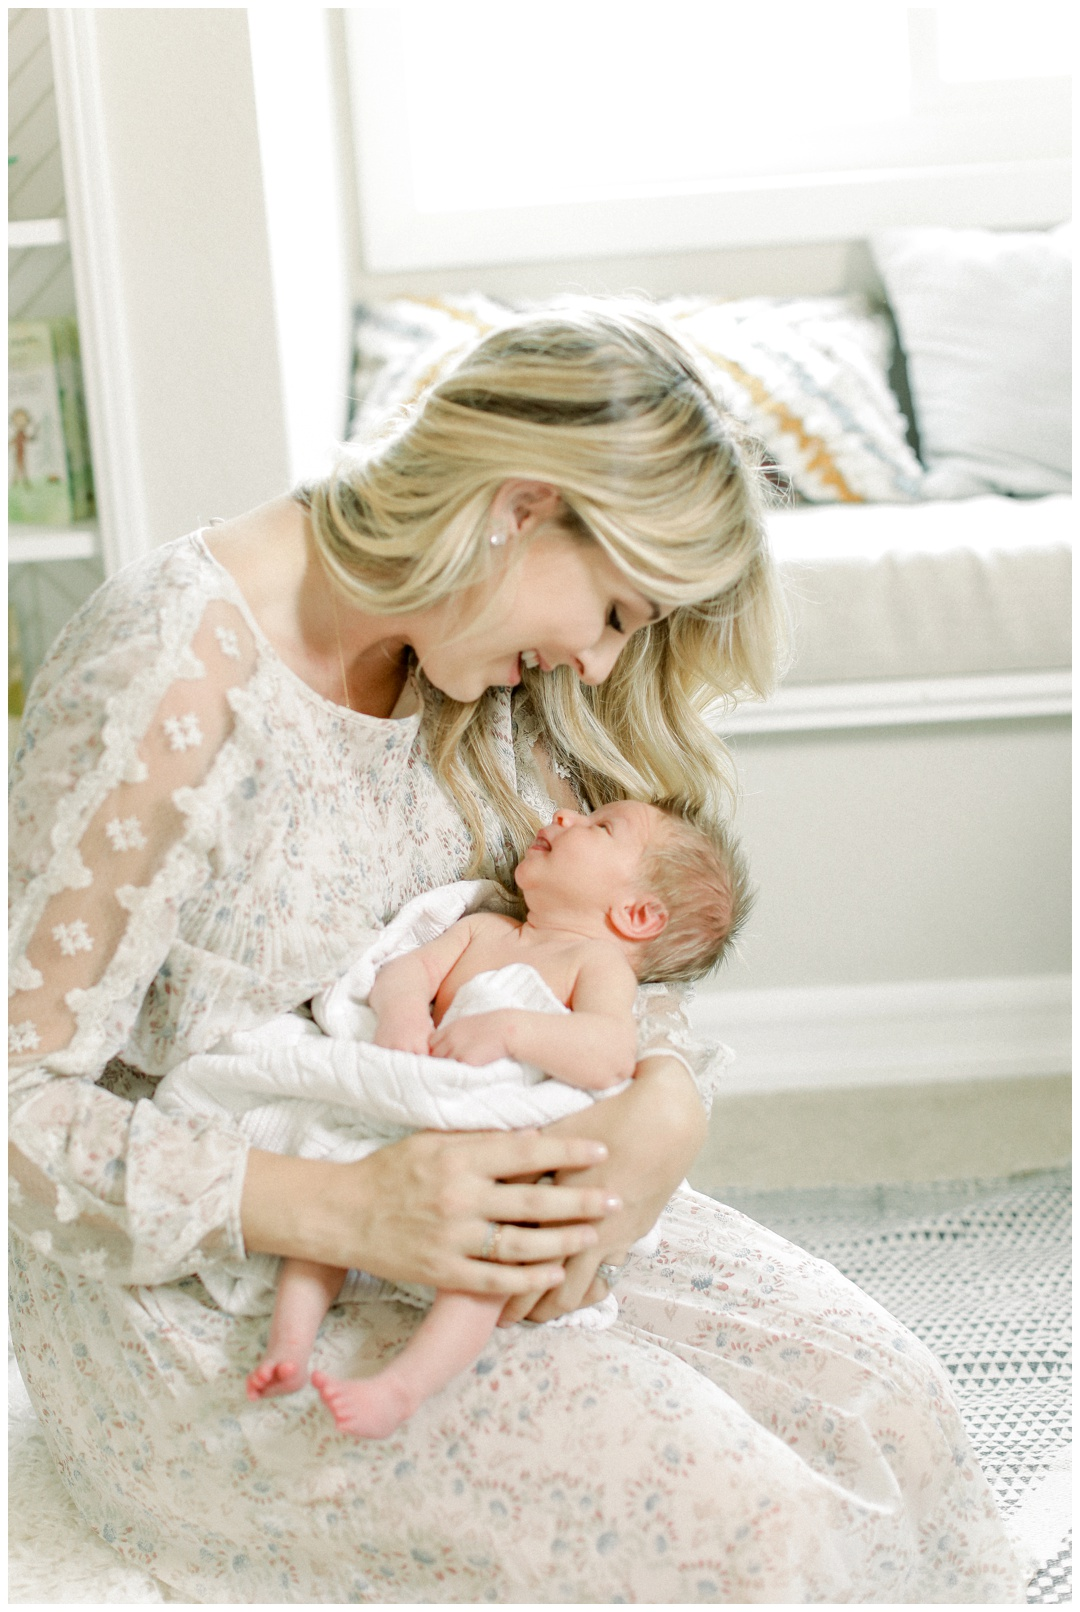 Newport_Beach_Newborn_Photographer_Newport_Beach_Newborn_Photography_Orange_County_Photography_Cori_Kleckner_Photography_Orange_County_in-home_Photography_Lifestyle_Session__1864.jpg